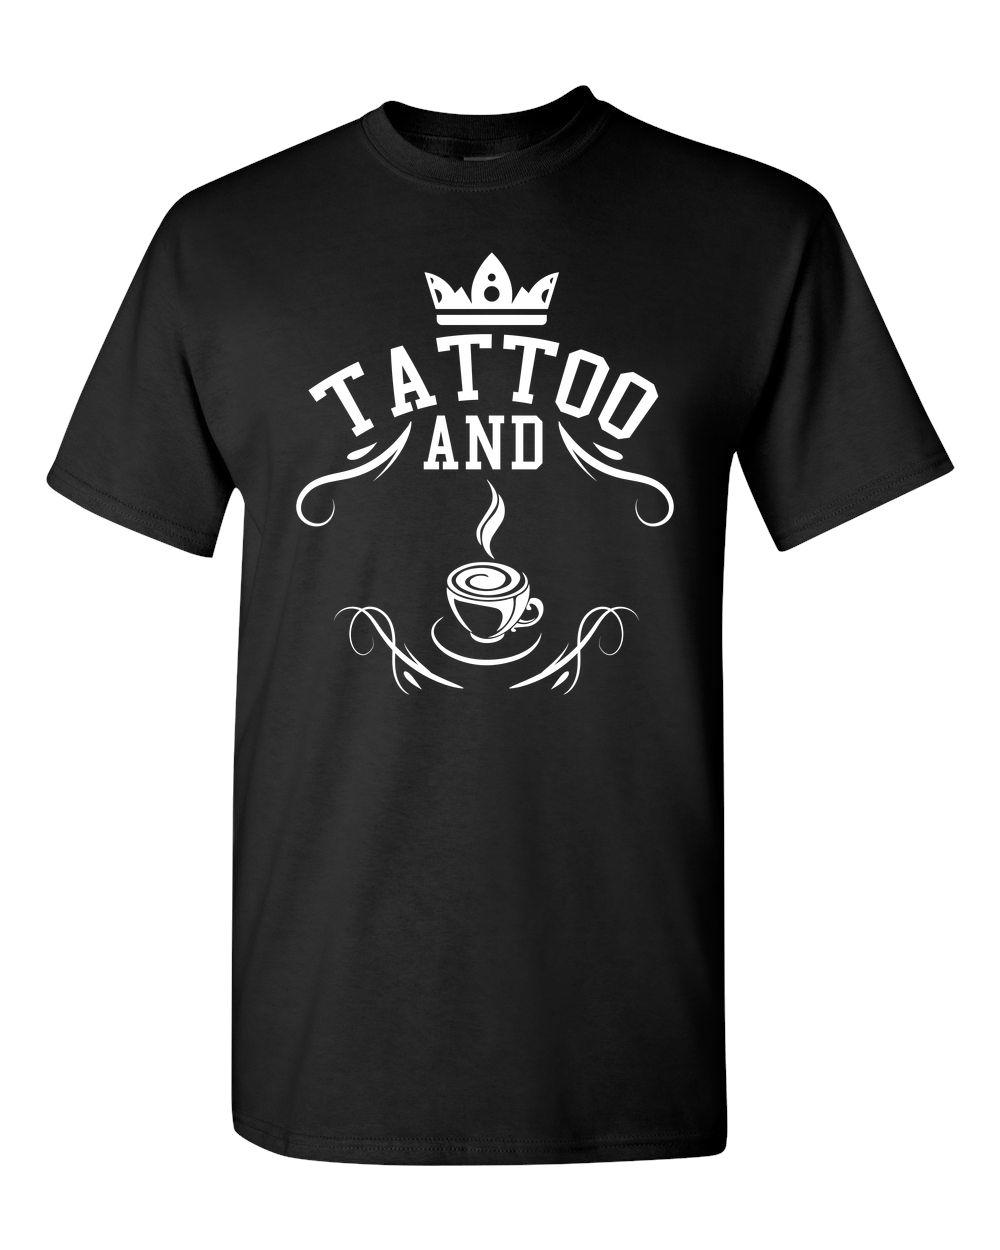 Tattoo and Coffee - Short-Sleeve Unisex T-Shirt